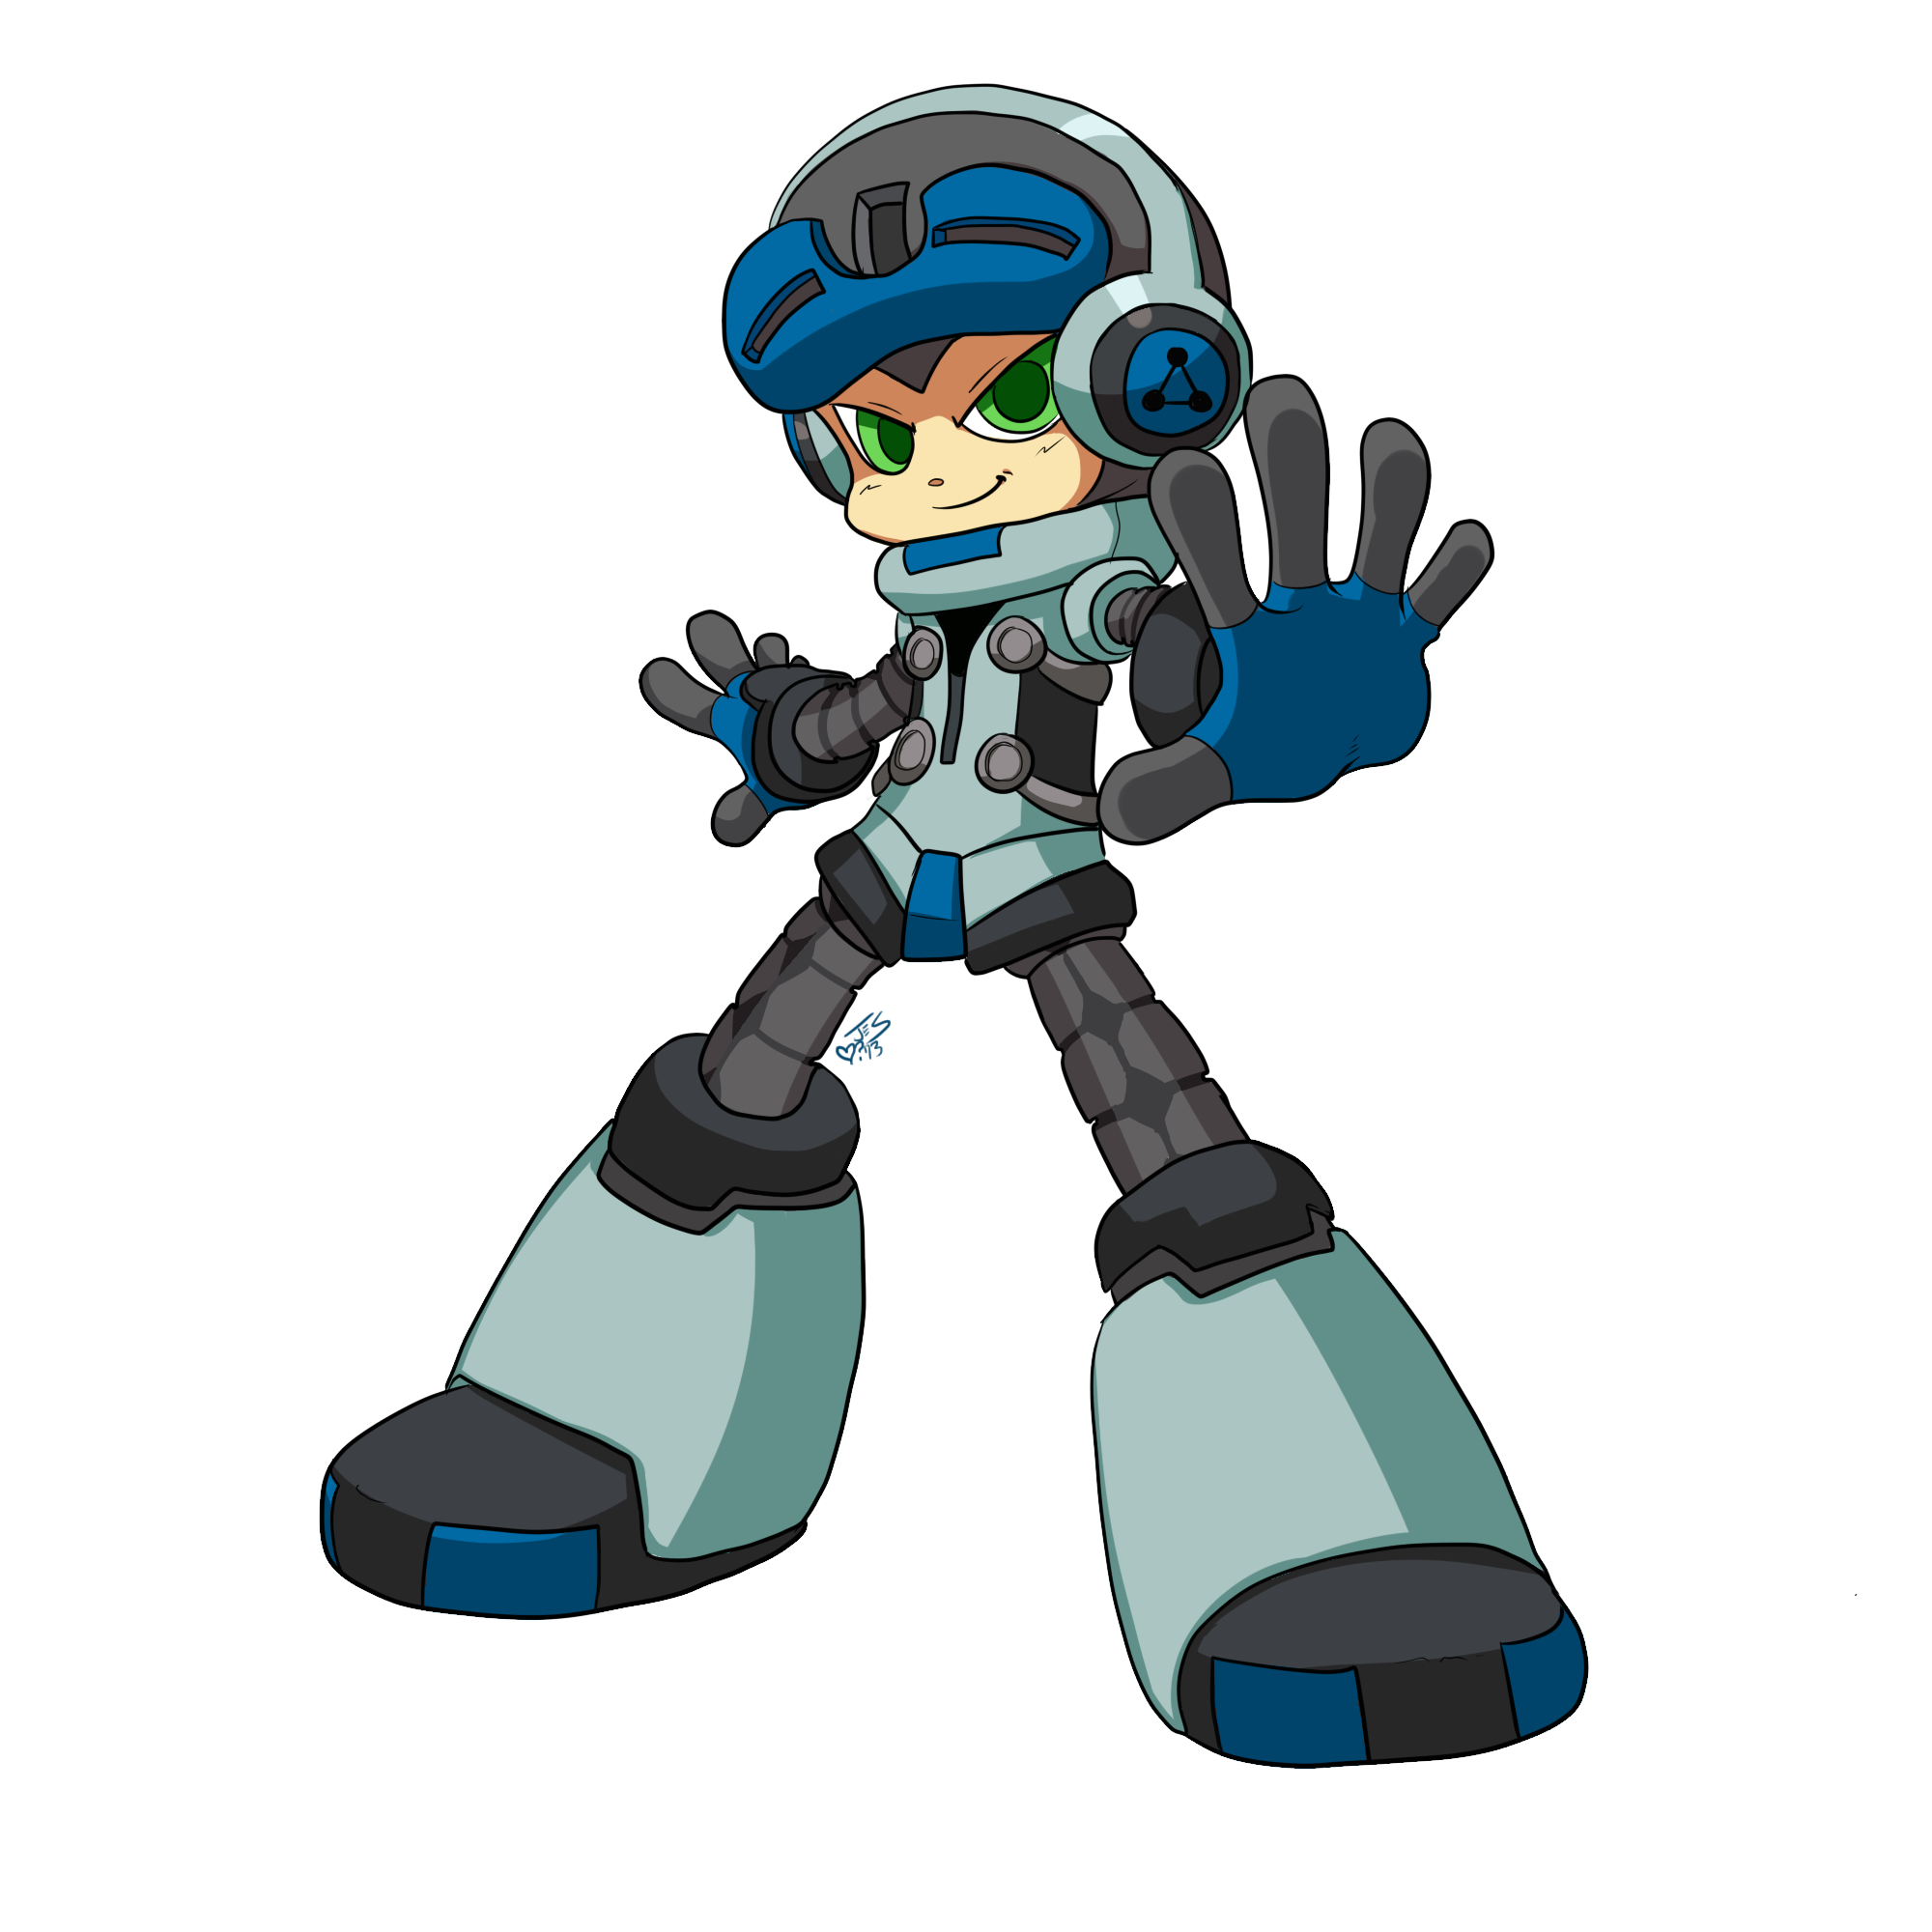 Mighty no 9 logo png. Image know your meme